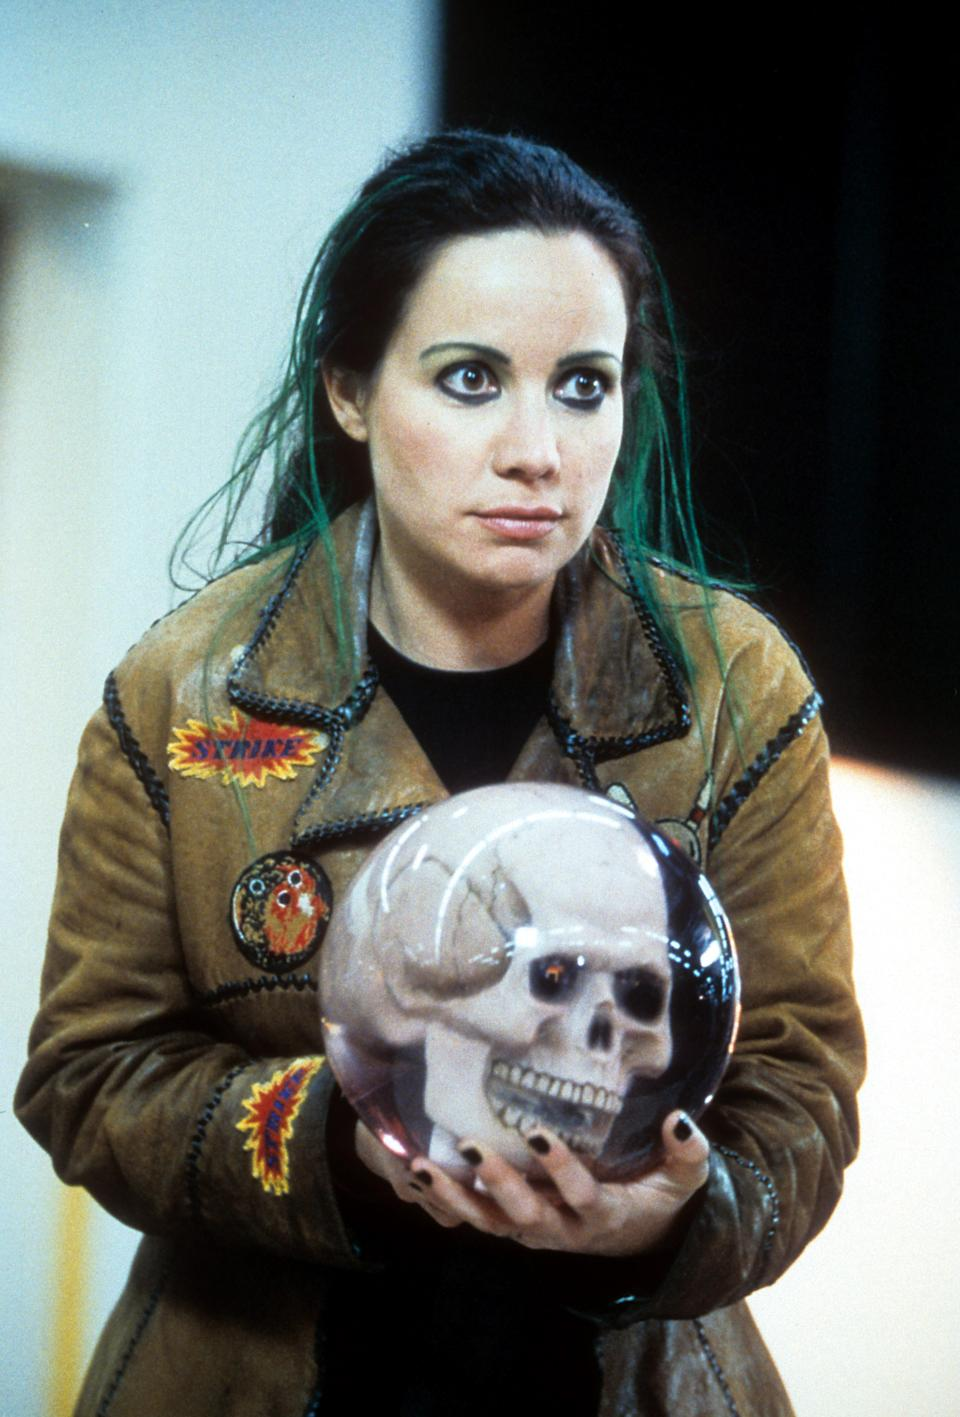 Janeane Garofalo holds an orb in a scene from the film 'Mystery Men', 1999. (Photo by Universal/Getty Images)